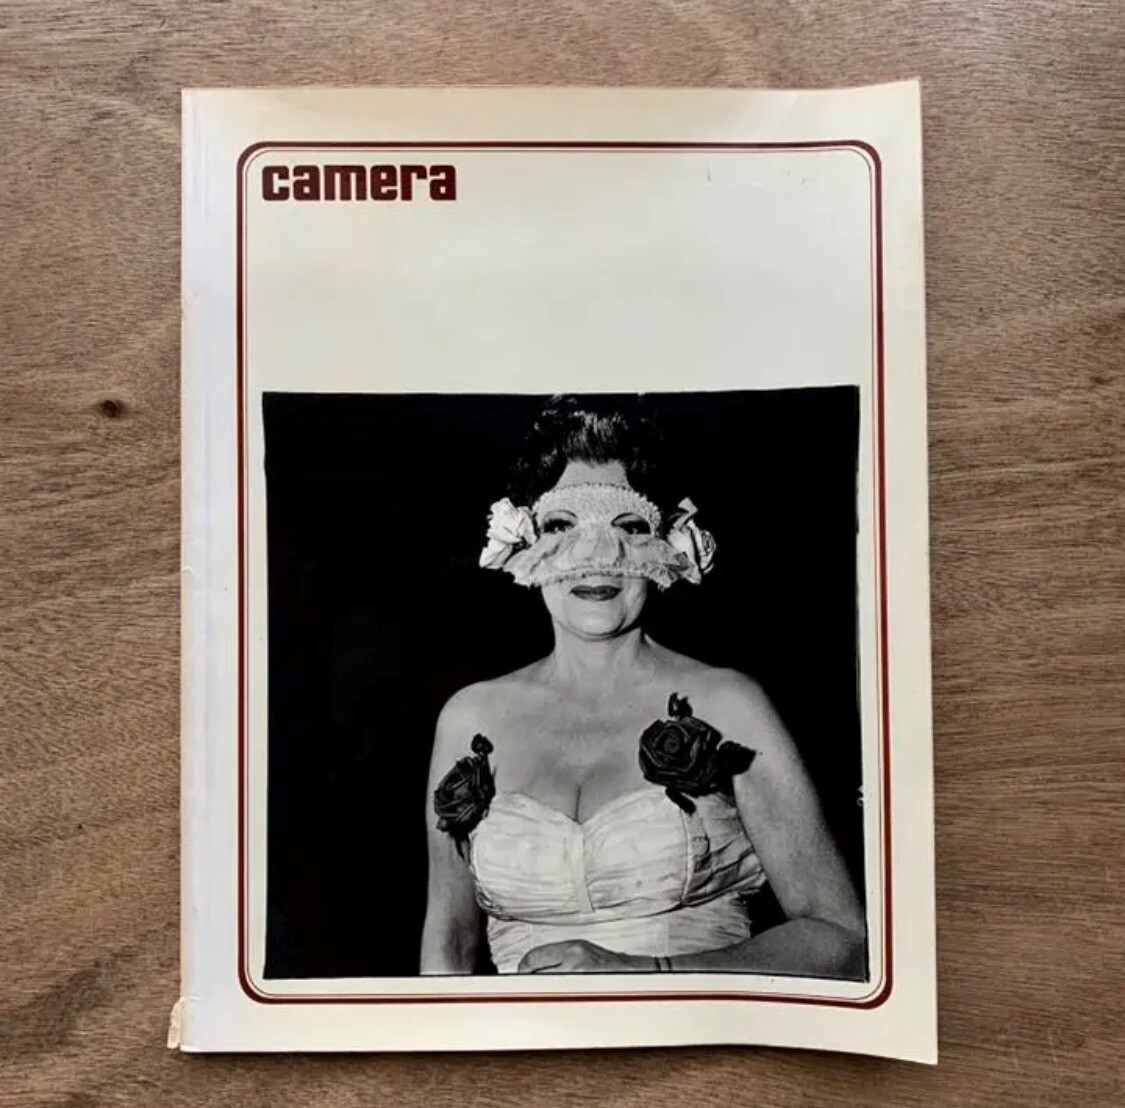 CAMERA No11 / 51th year / C.J.BUCHER.LTD / 1972